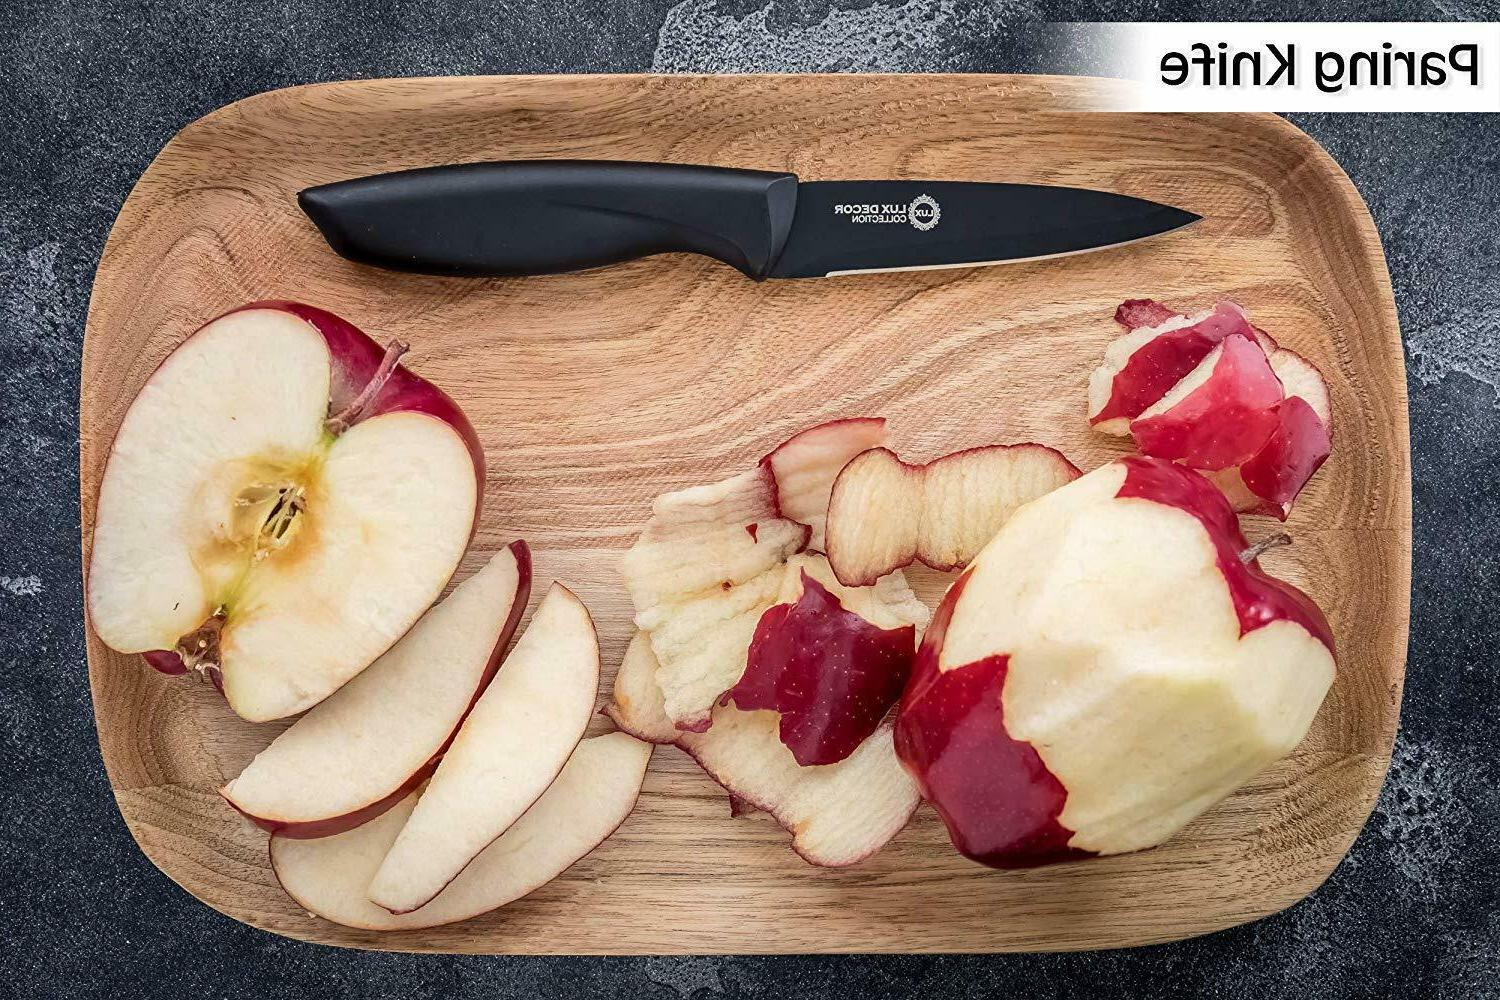 Knives 7 Piece Cutlery Pizza Professional Knife